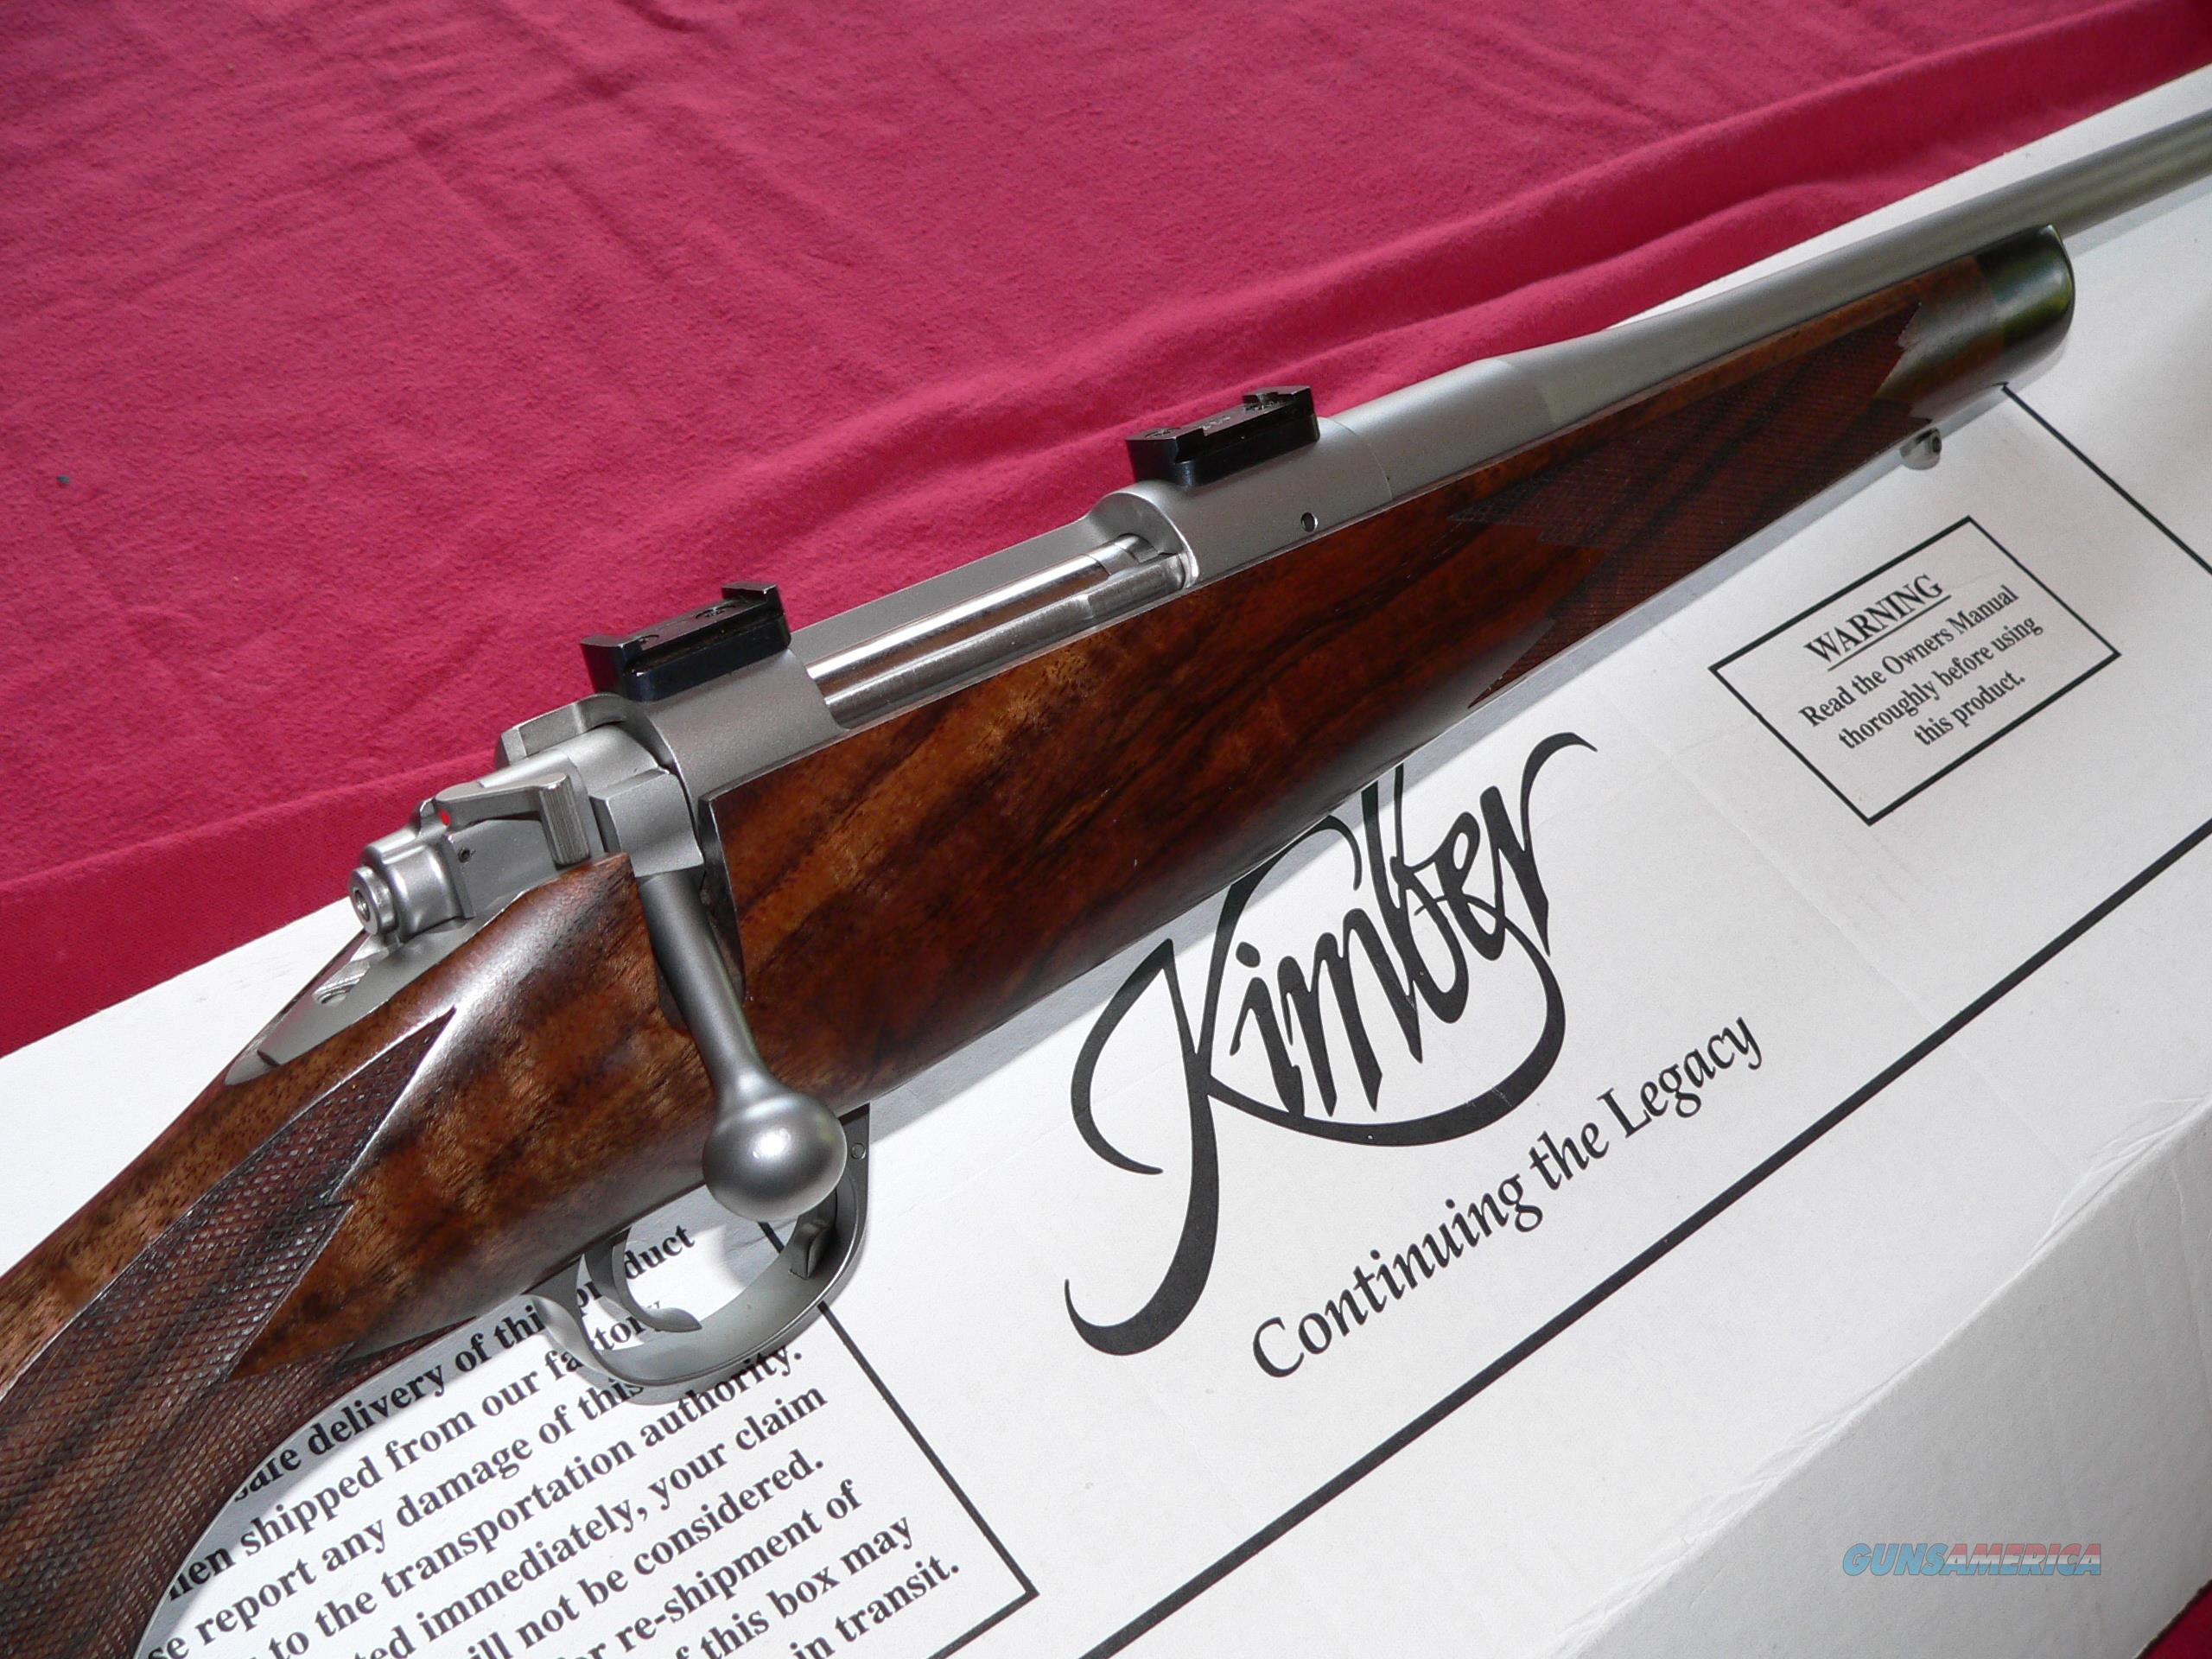 New In Box (NIB) Kimber Model 84M Classic Stainless cal. 7mm-08 Bolt-action Rifle.  Guns > Rifles > Kimber of America Rifles